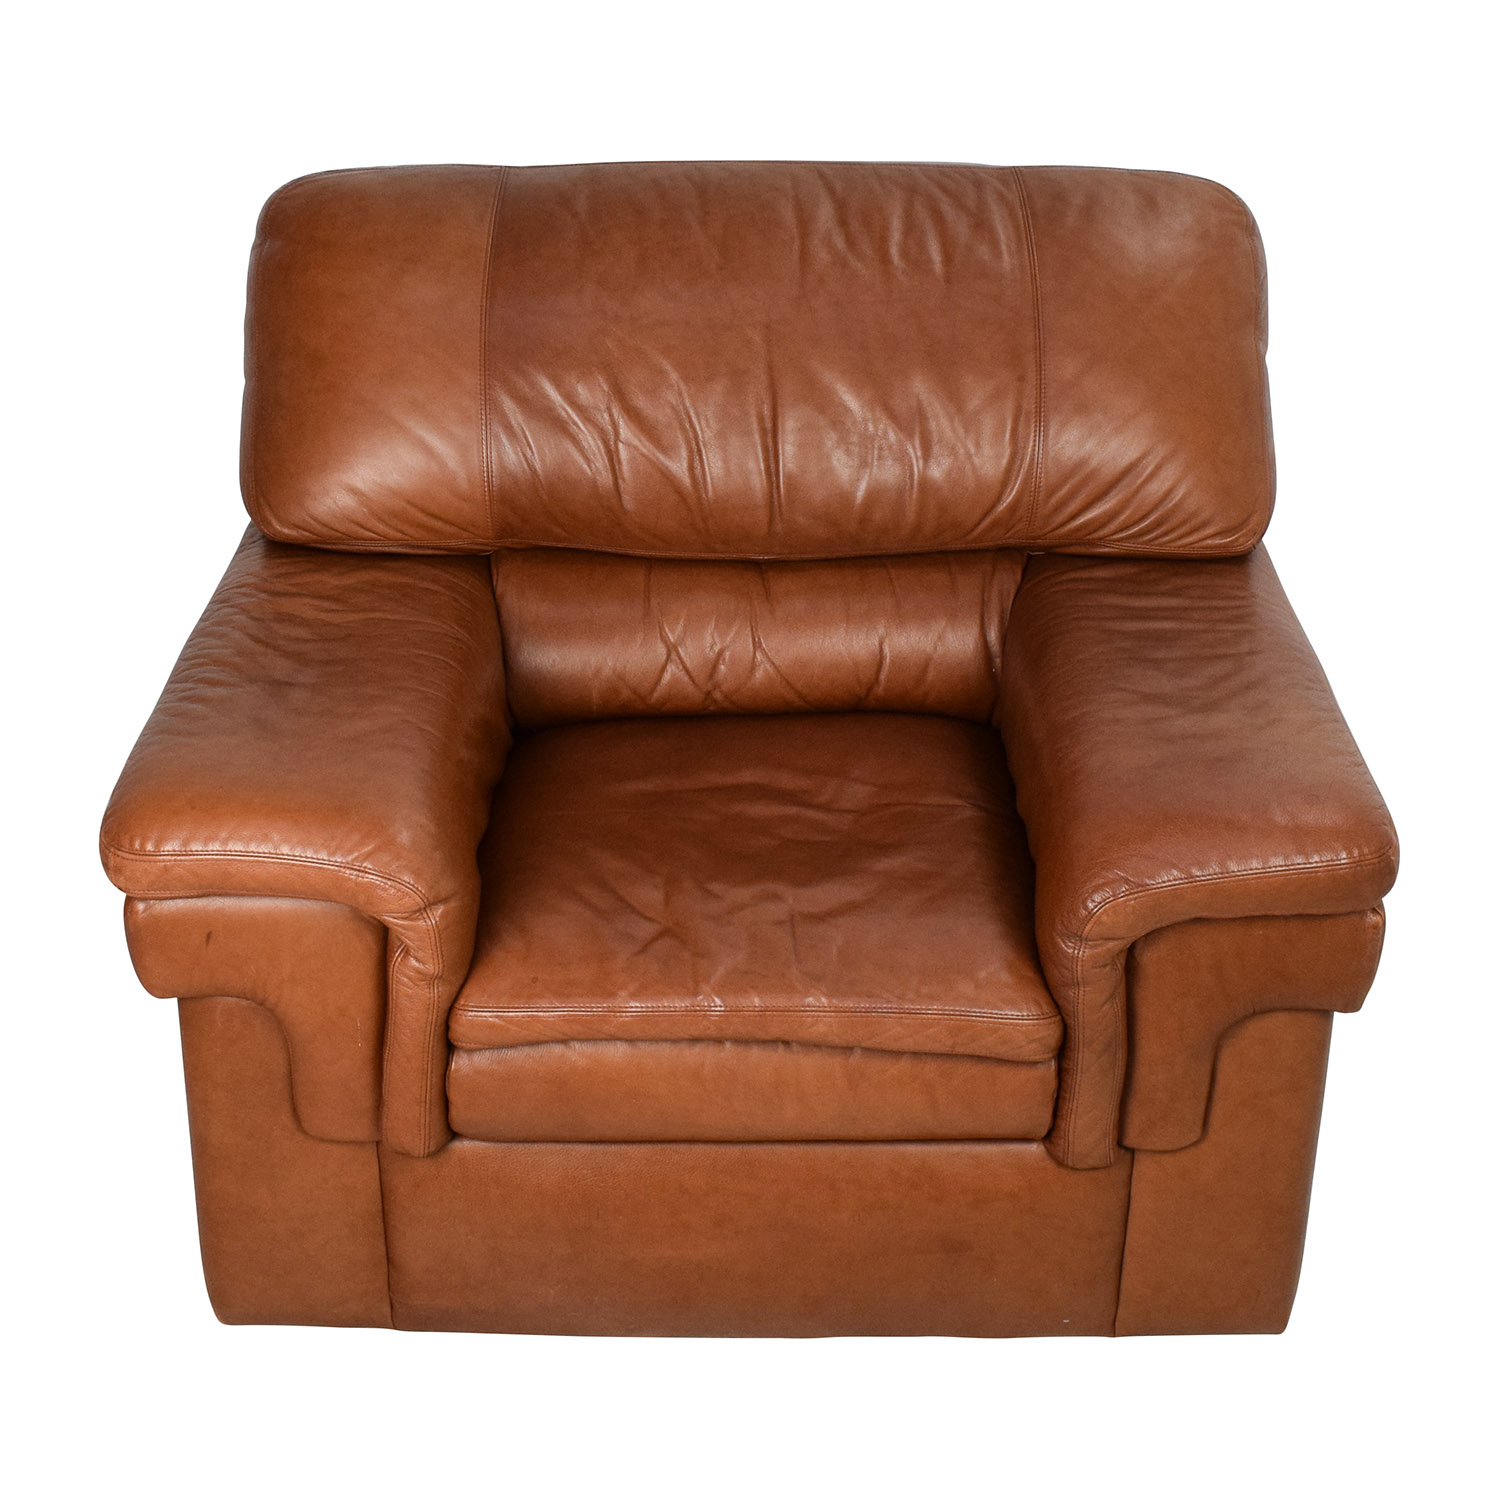 Classic Cherry Brown Leather Armchair for sale